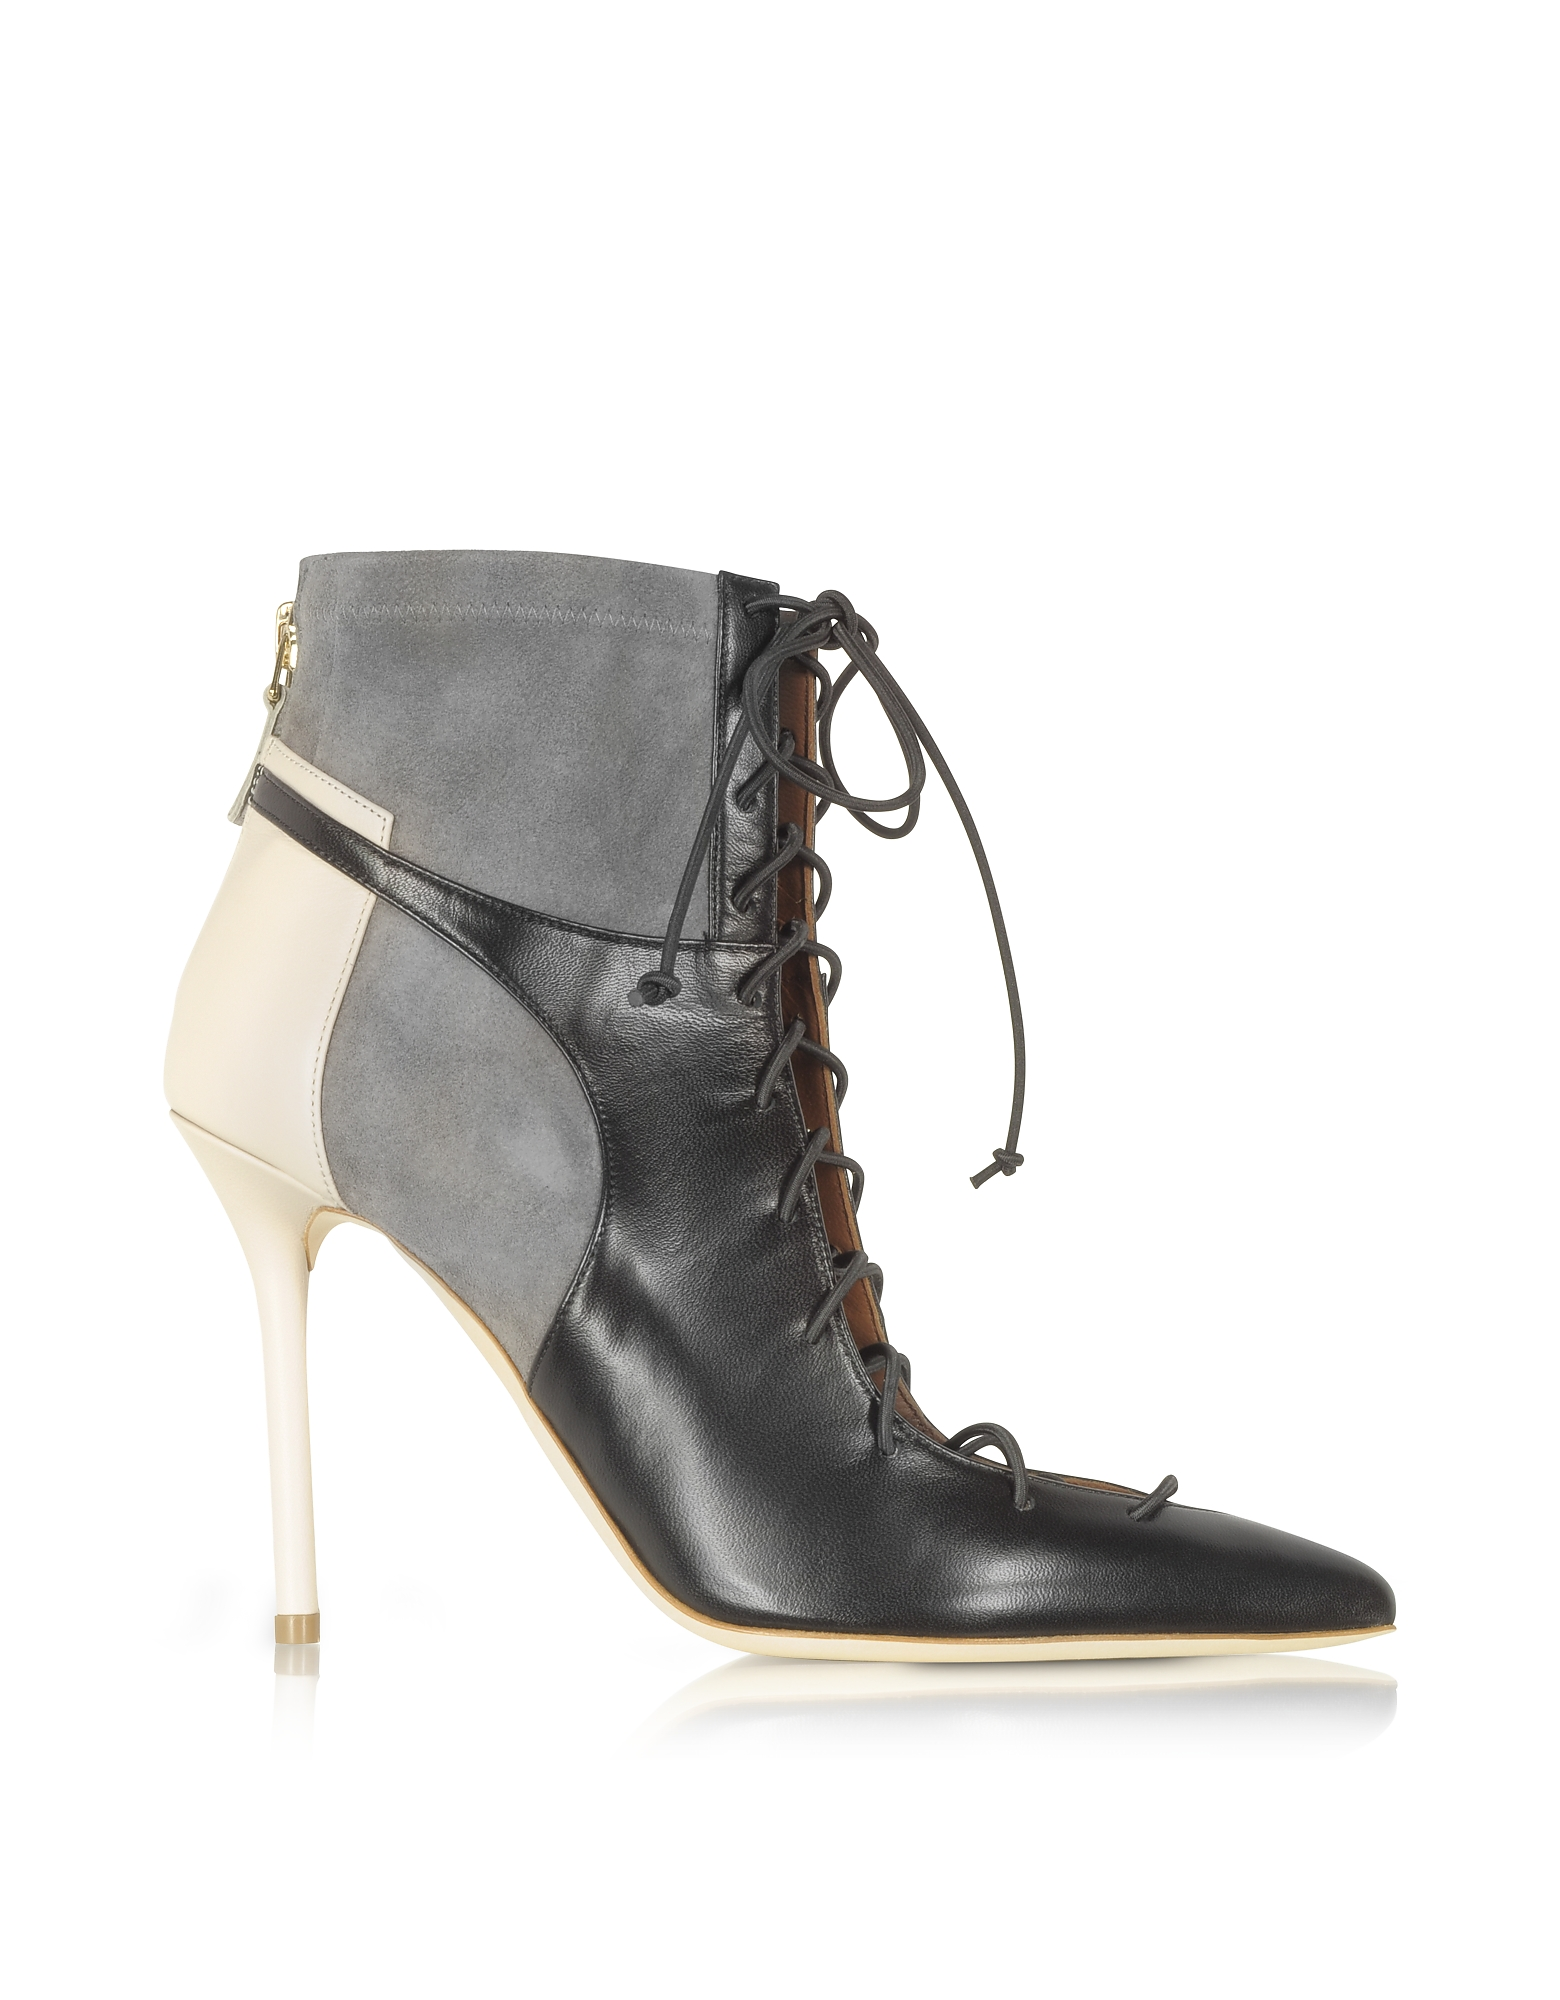 Malone Souliers Shoes, Color Block Nappa Leather and Stretch Suede Montana Bootie